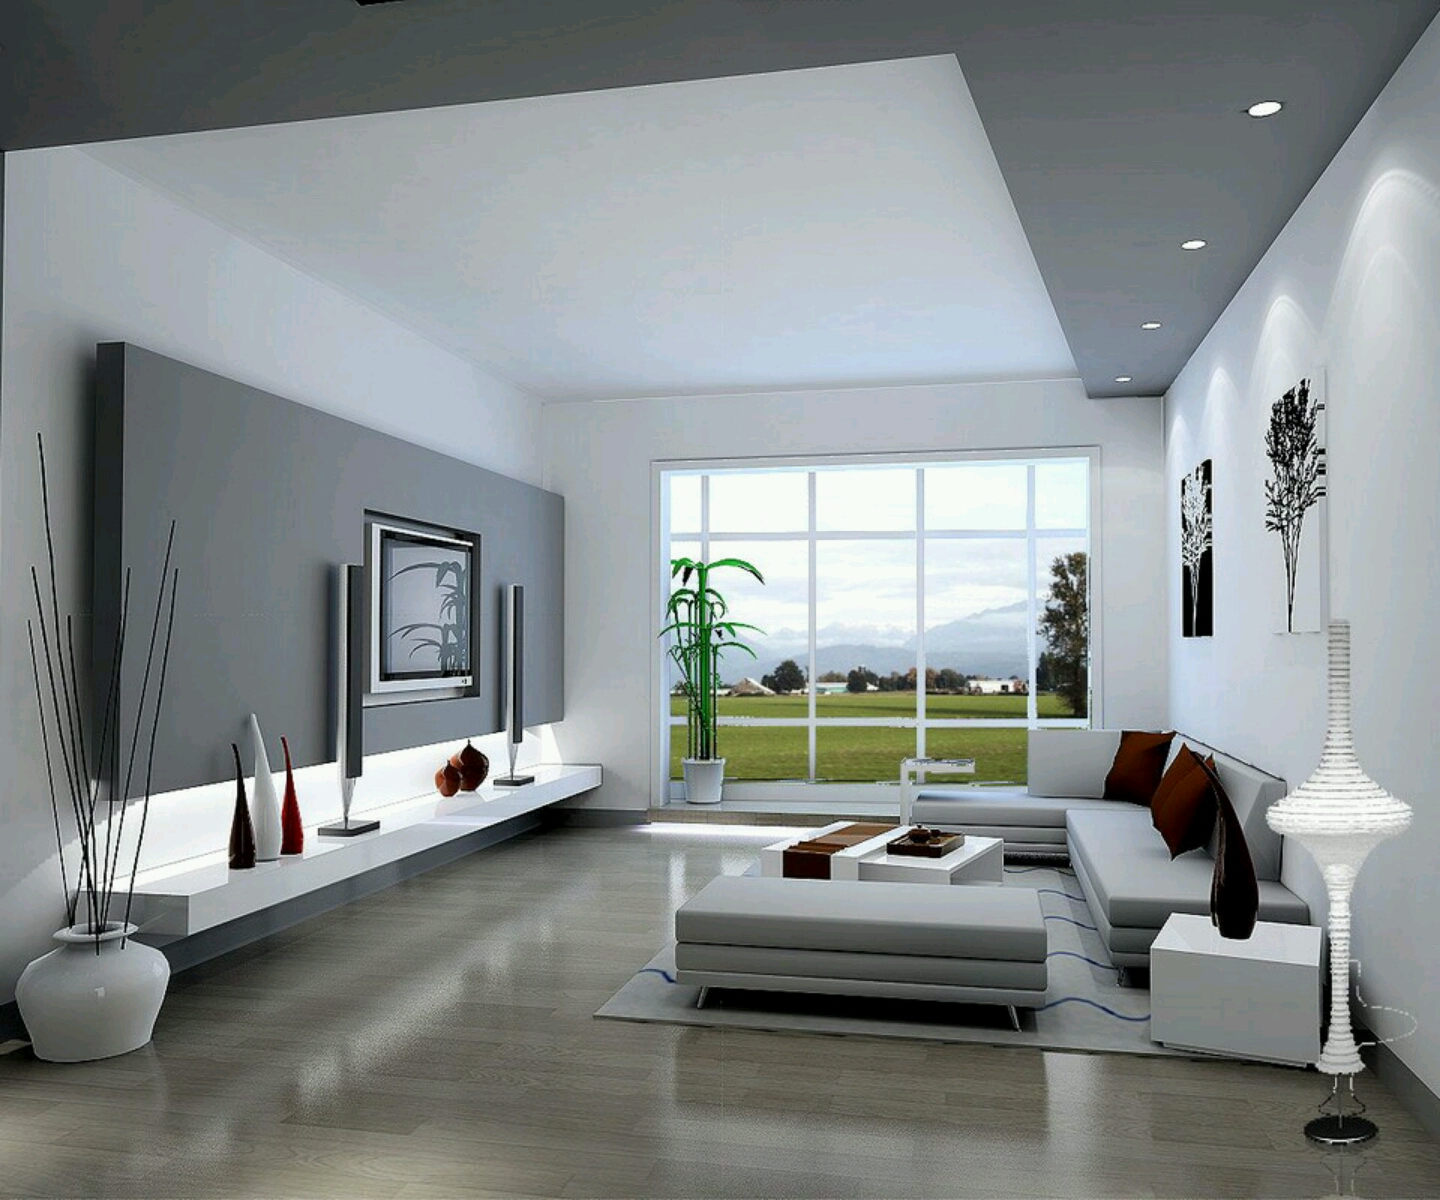 New home designs latest modern living rooms interior for Contemporary living room decorating ideas